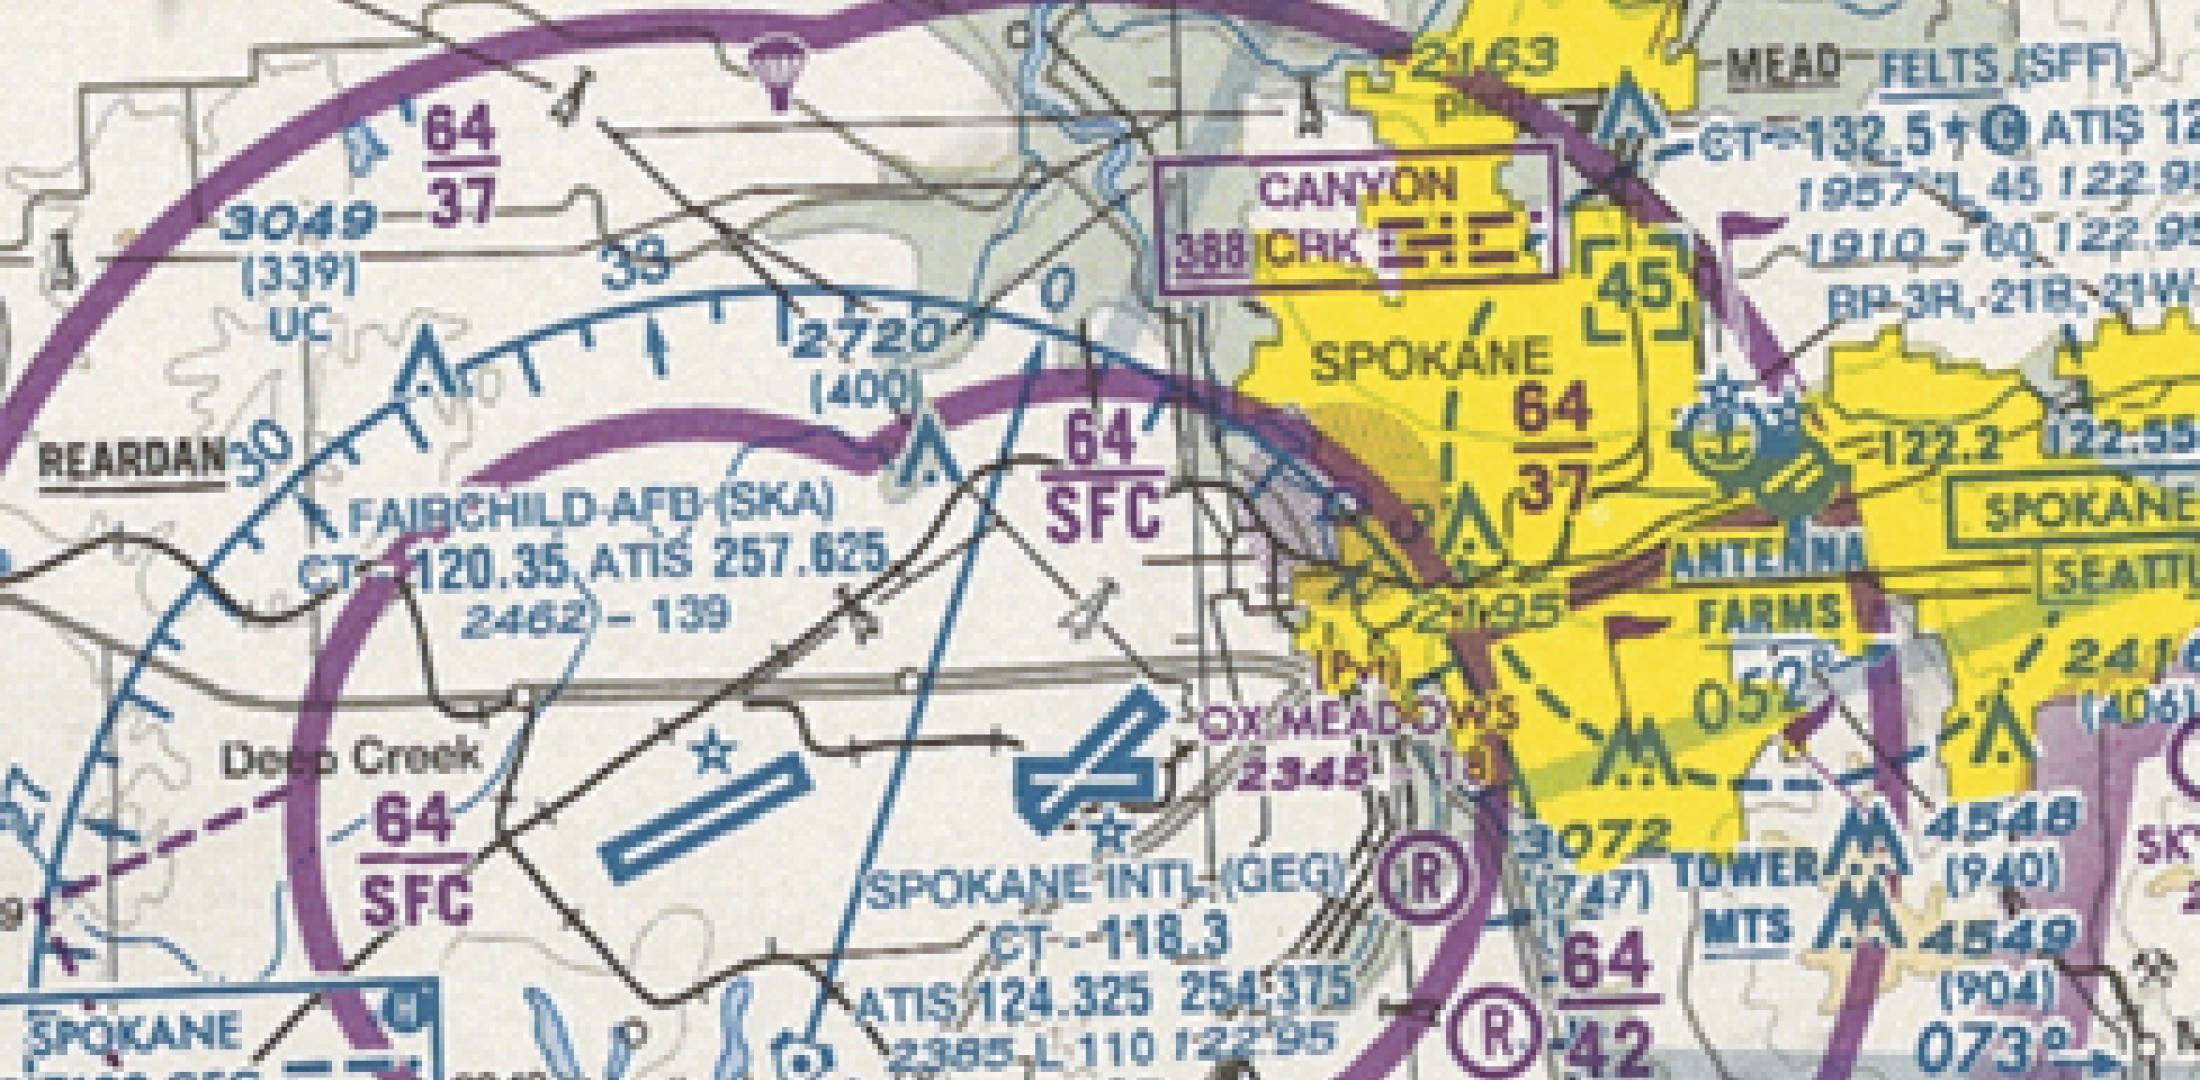 Felts Airport sits just east of the busy Spokane/Fairchild AFB Class C